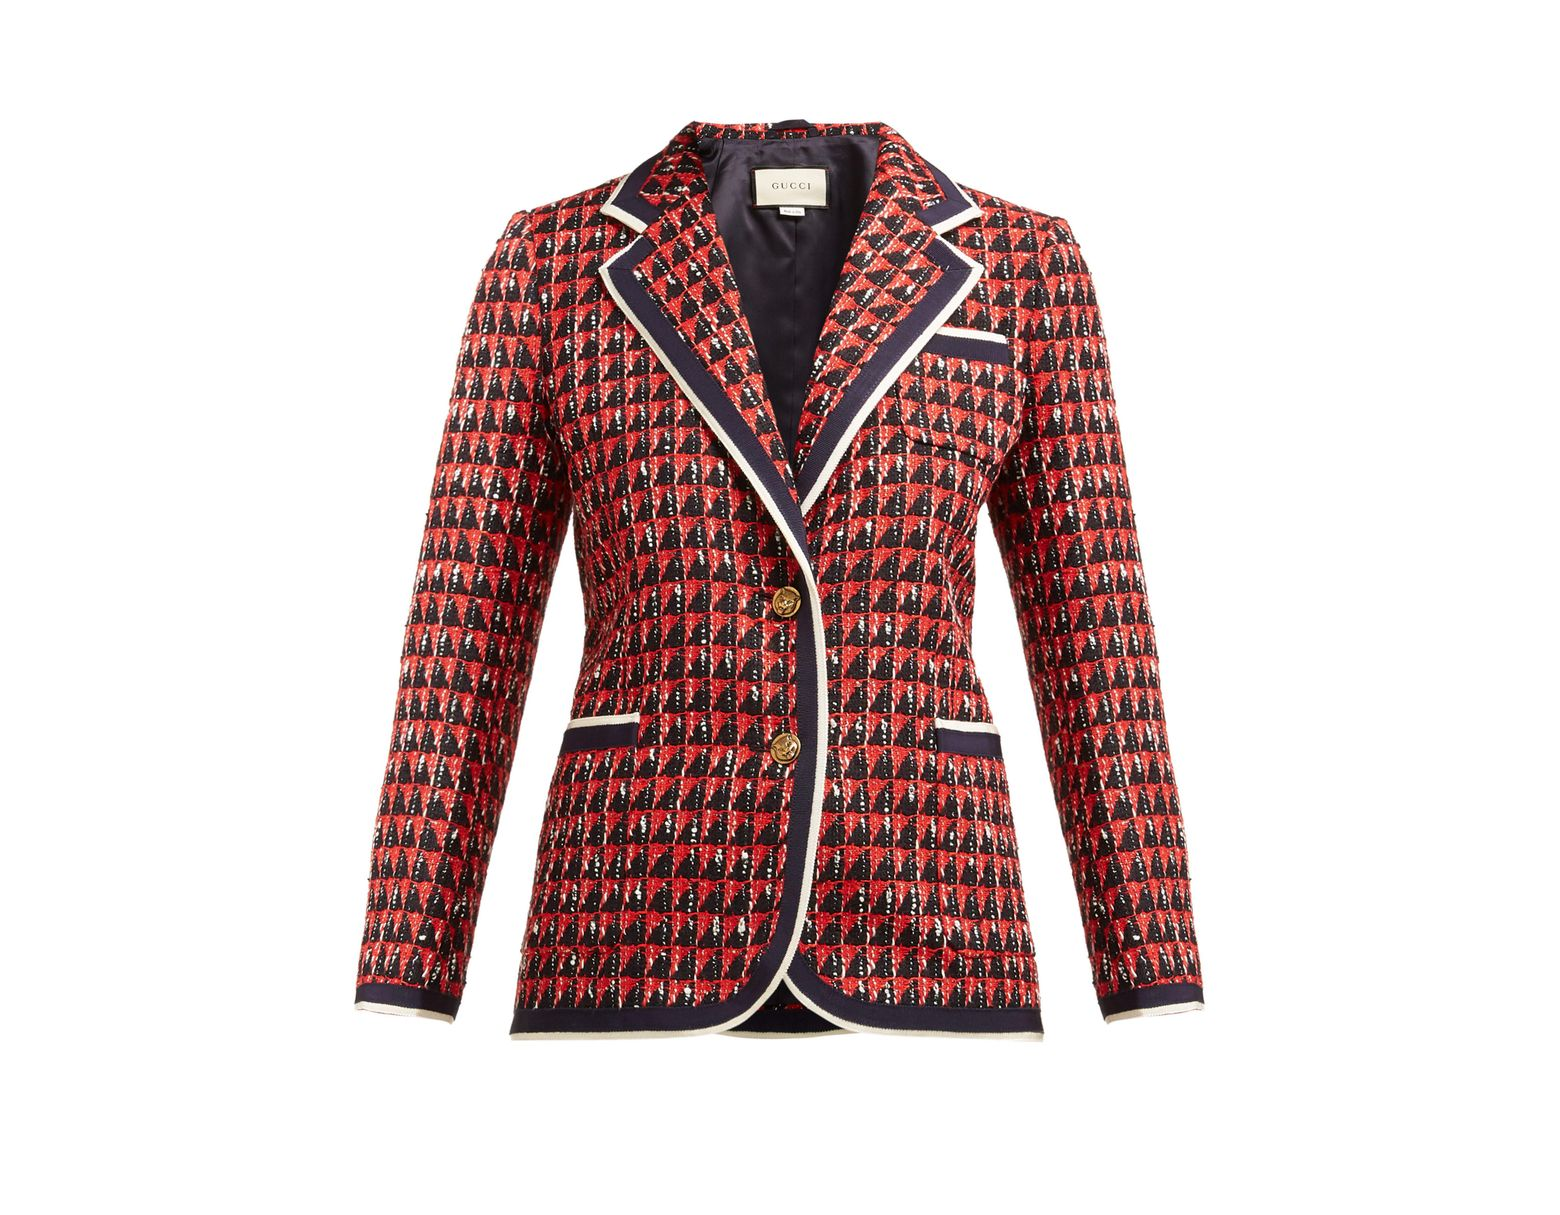 093235f0e1e Gucci Geo Tweed Jacket in Red - Lyst